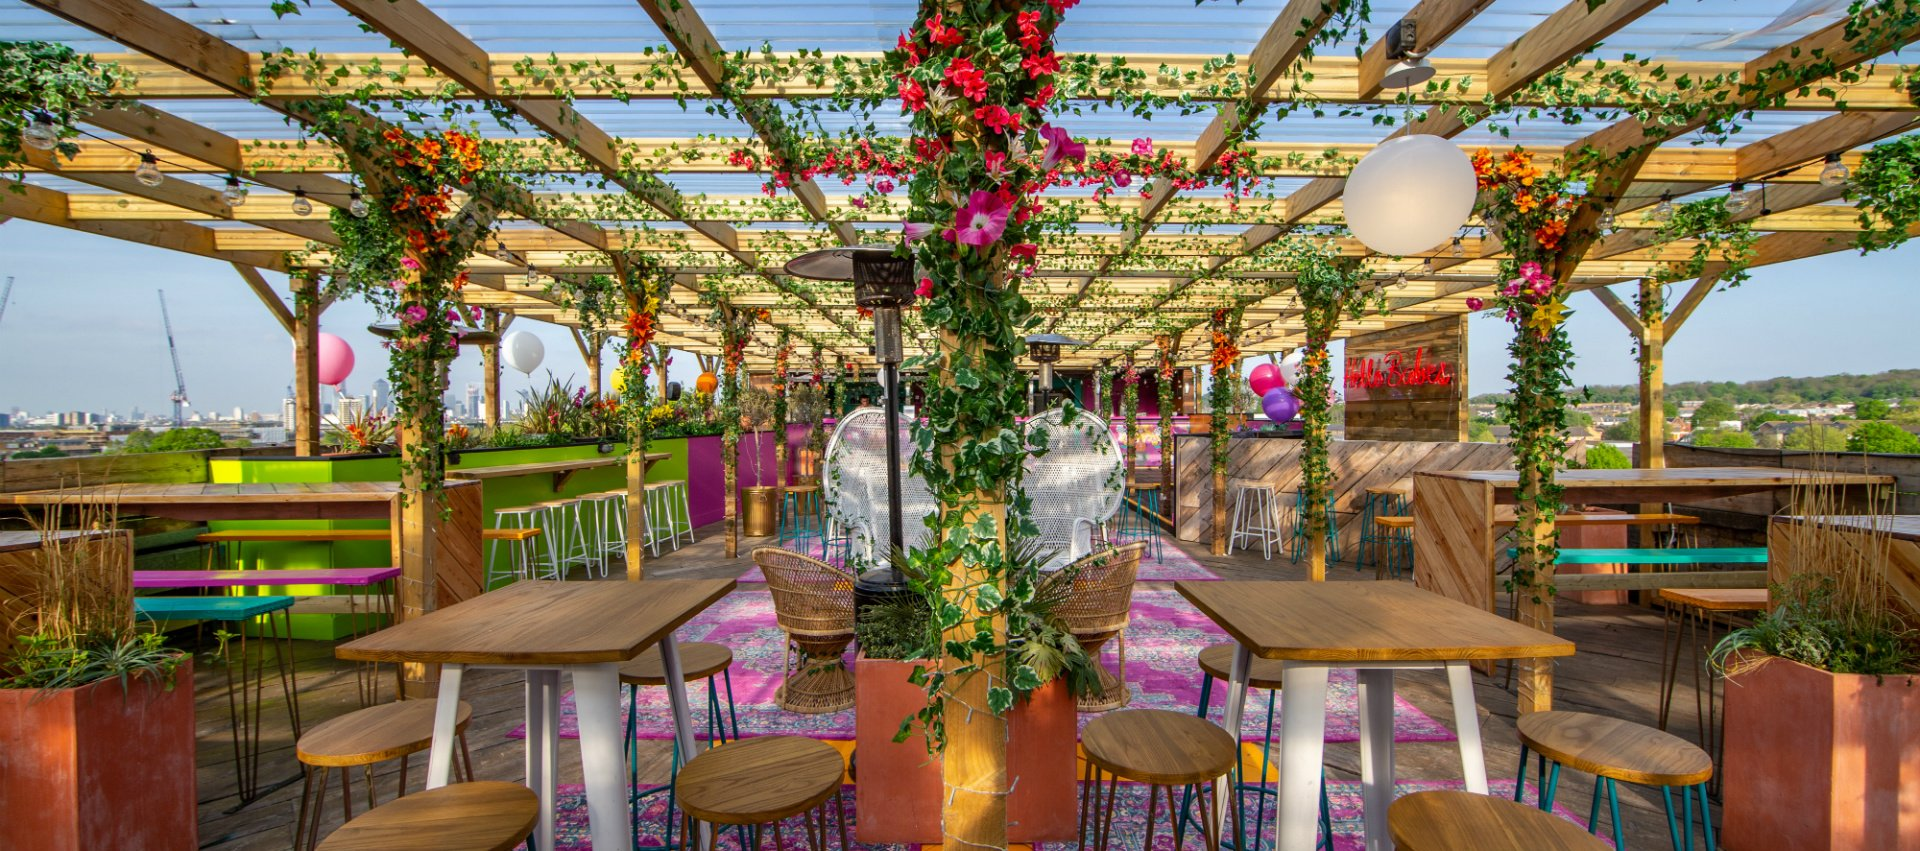 Bussey Rooftop Bar Colourful High Rise Paradise With